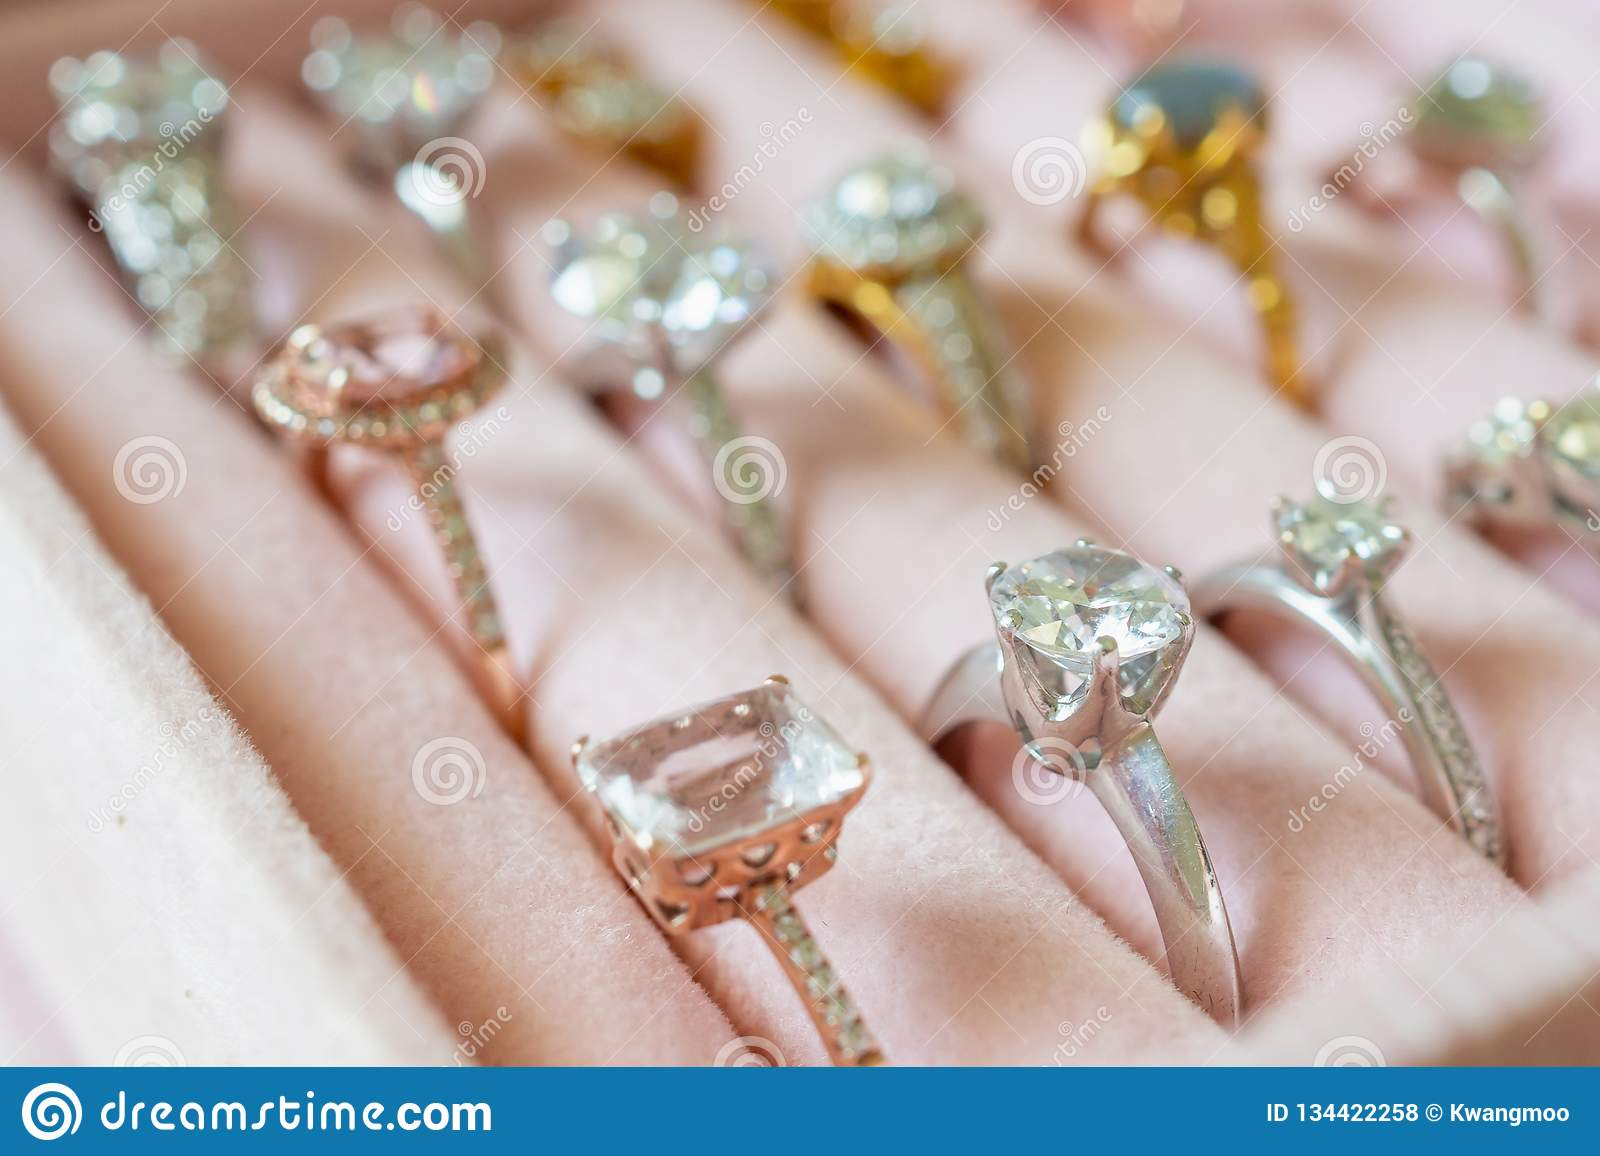 Jewelry Diamond Rings And Earrings In Box Stock Photo Image Of